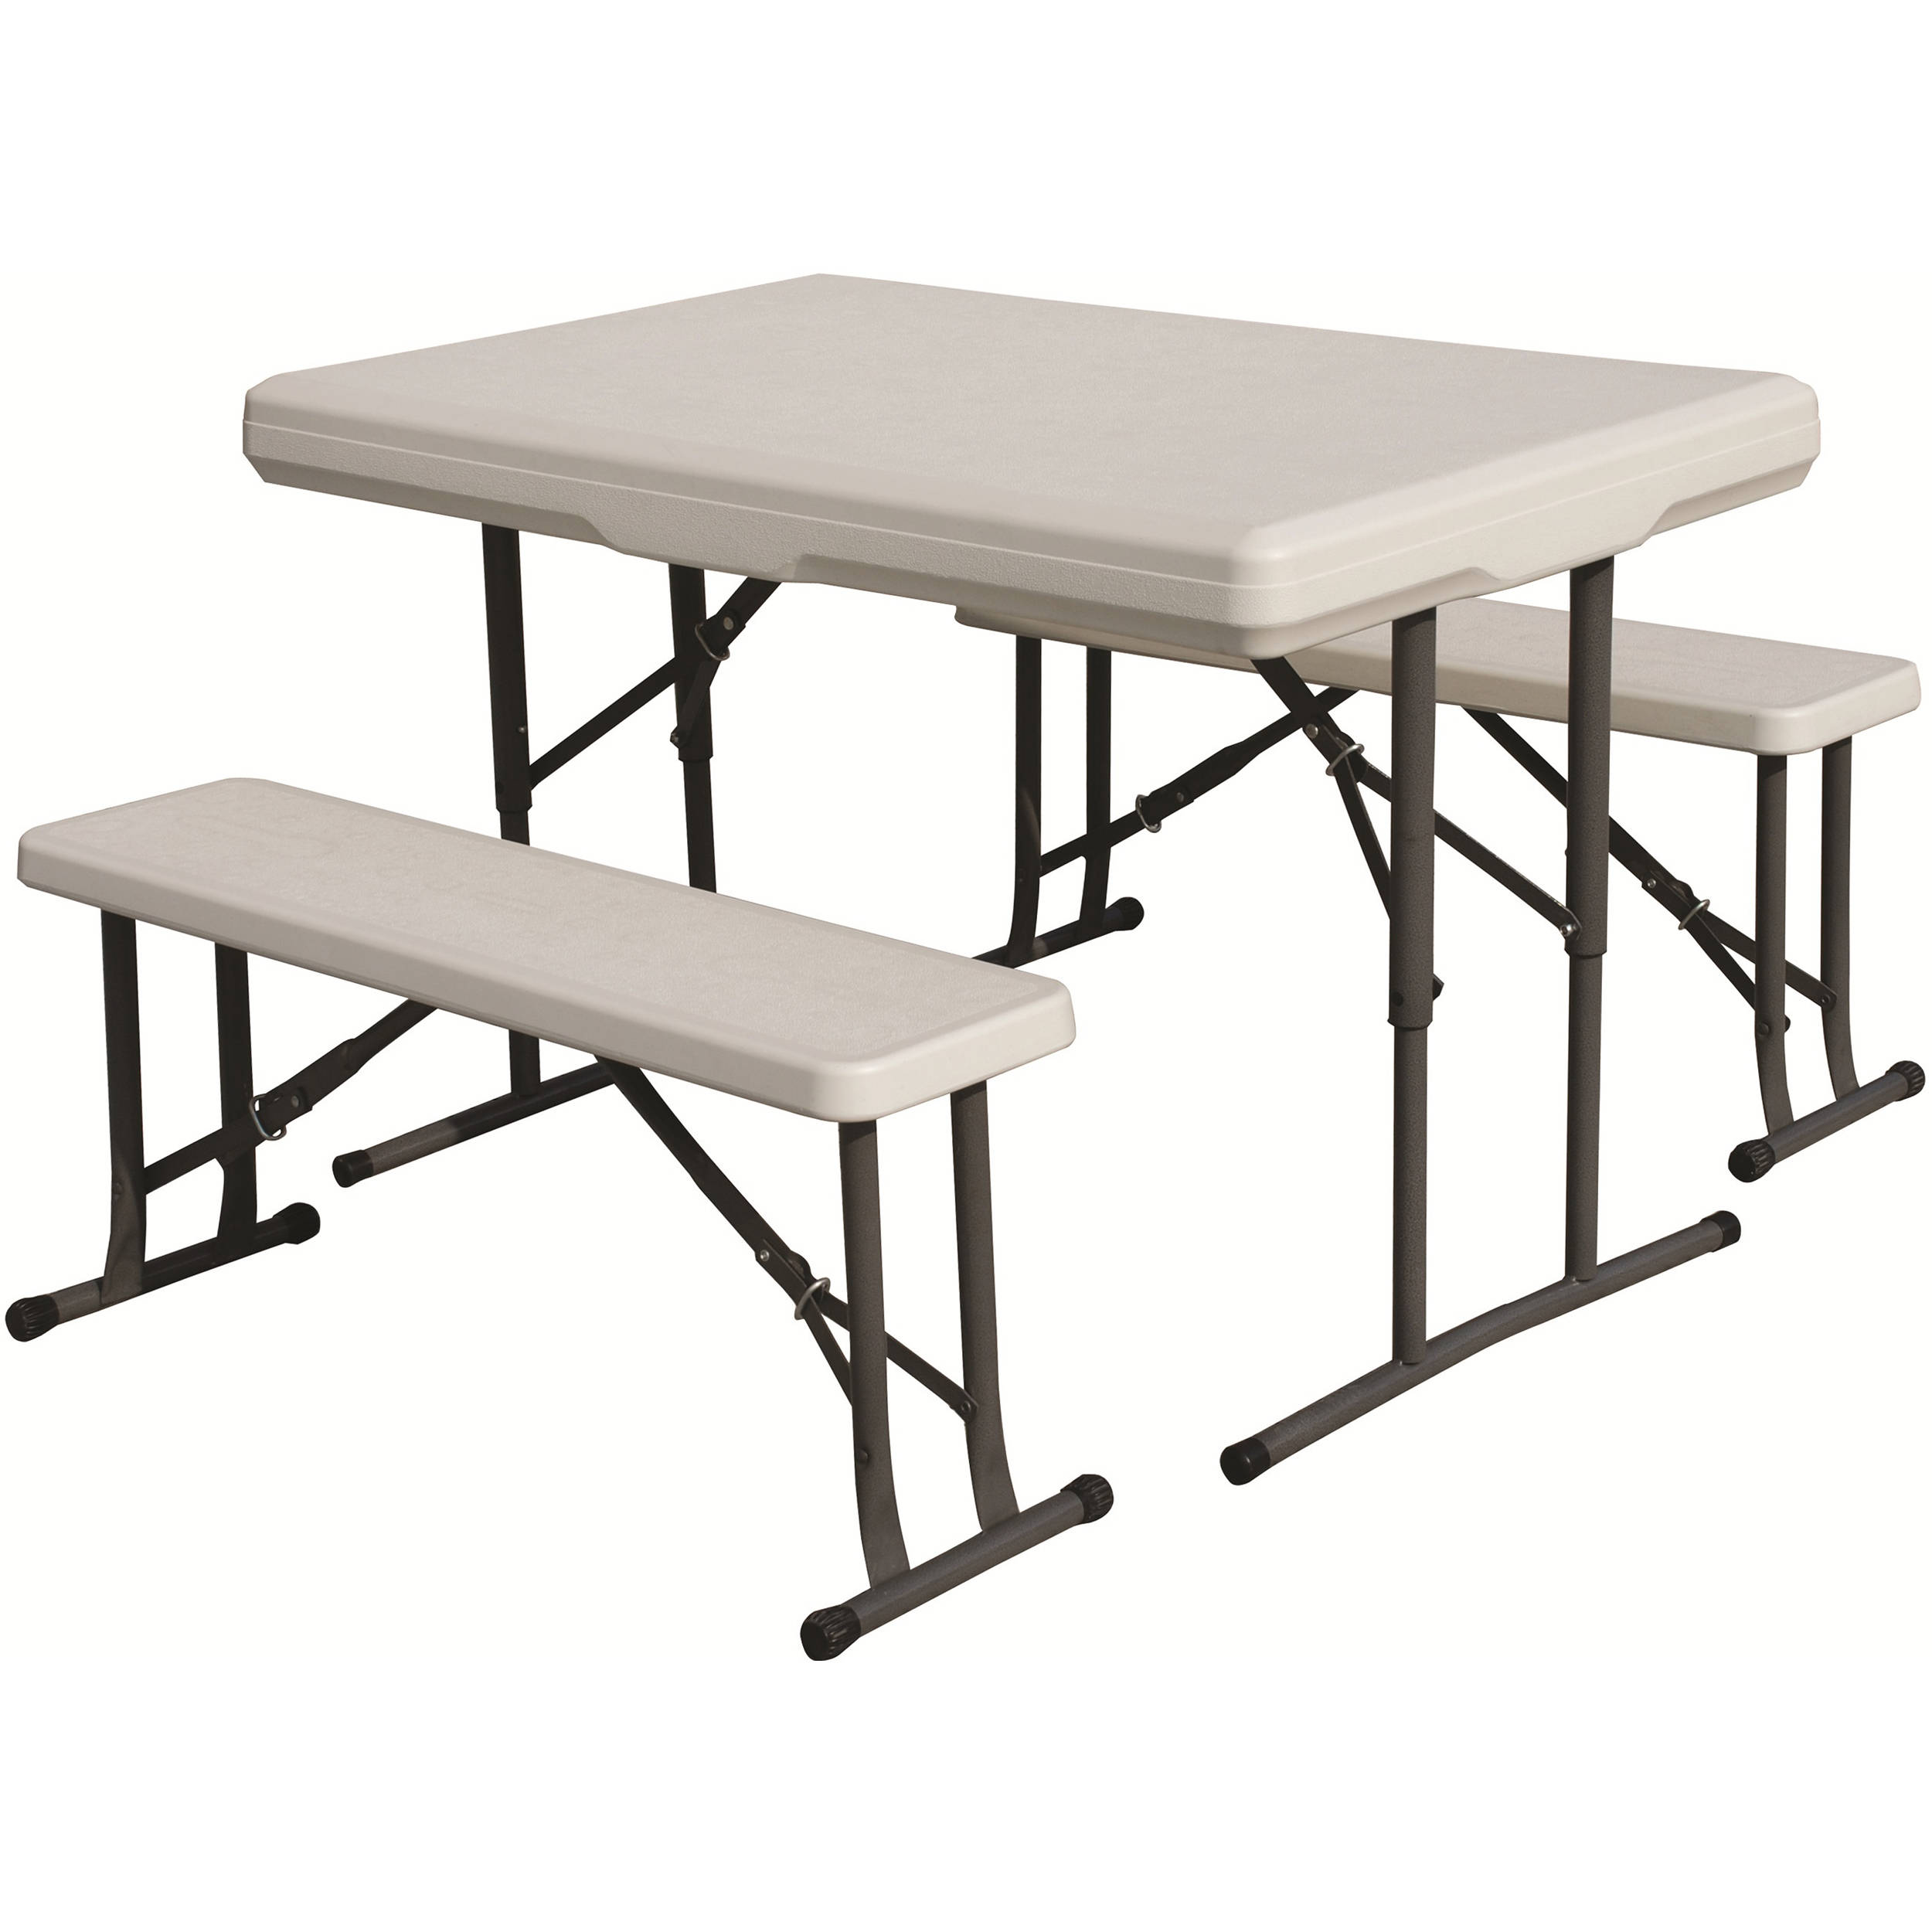 Stansport Folding Table With Bench Seats White 616 B H Photo